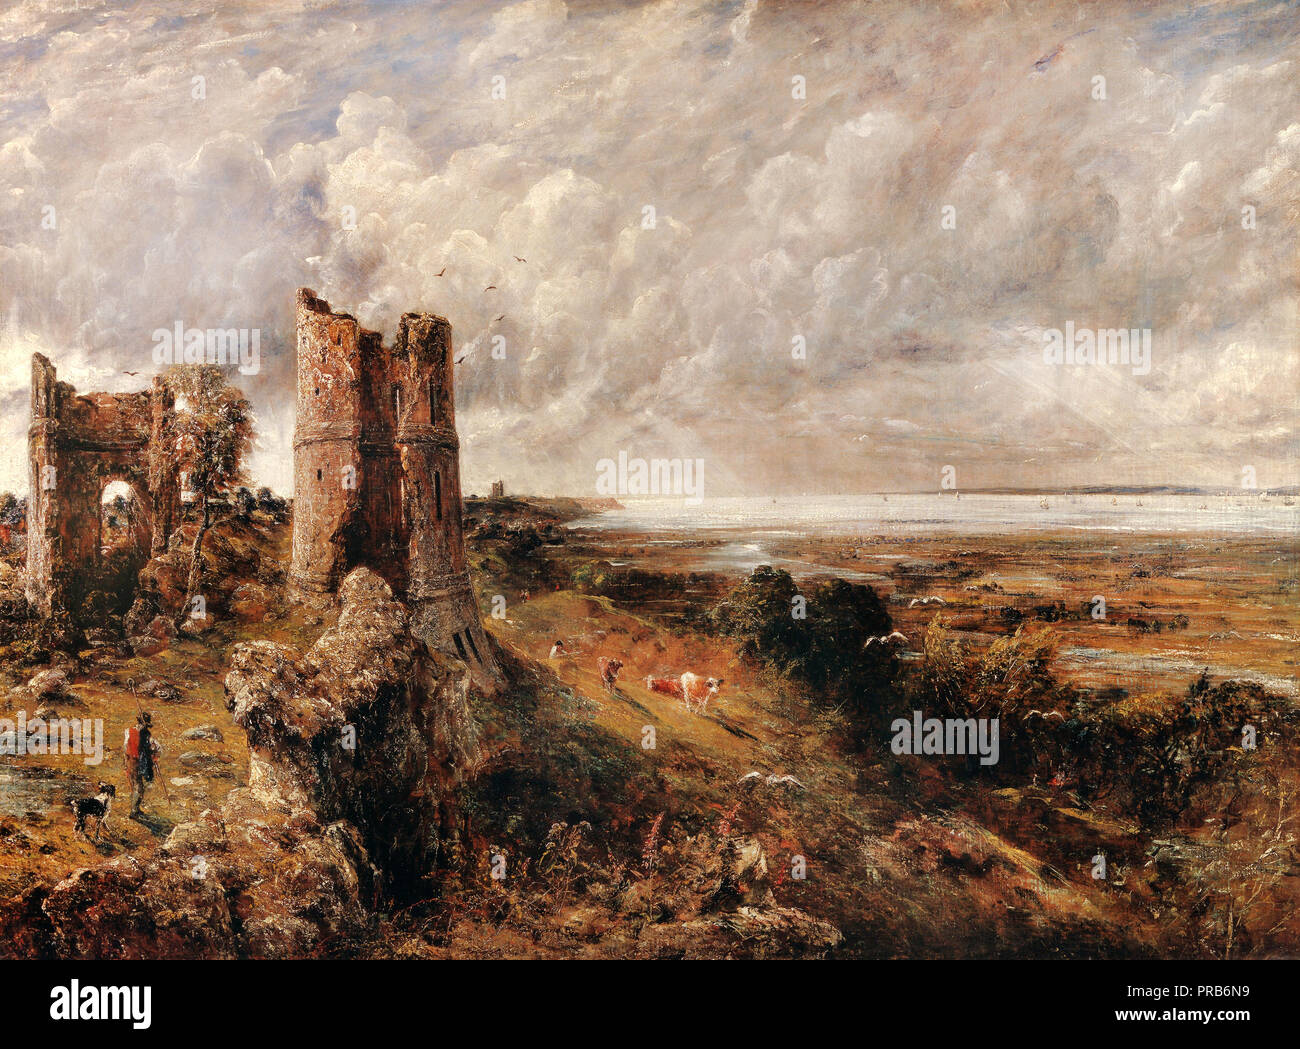 John Constable, Hadleigh Castle, The Mouth of the Thames Morning After a Stormy Night 1829 Oil on canvas, Yale Center for British Art, New Haven, USA - Stock Image